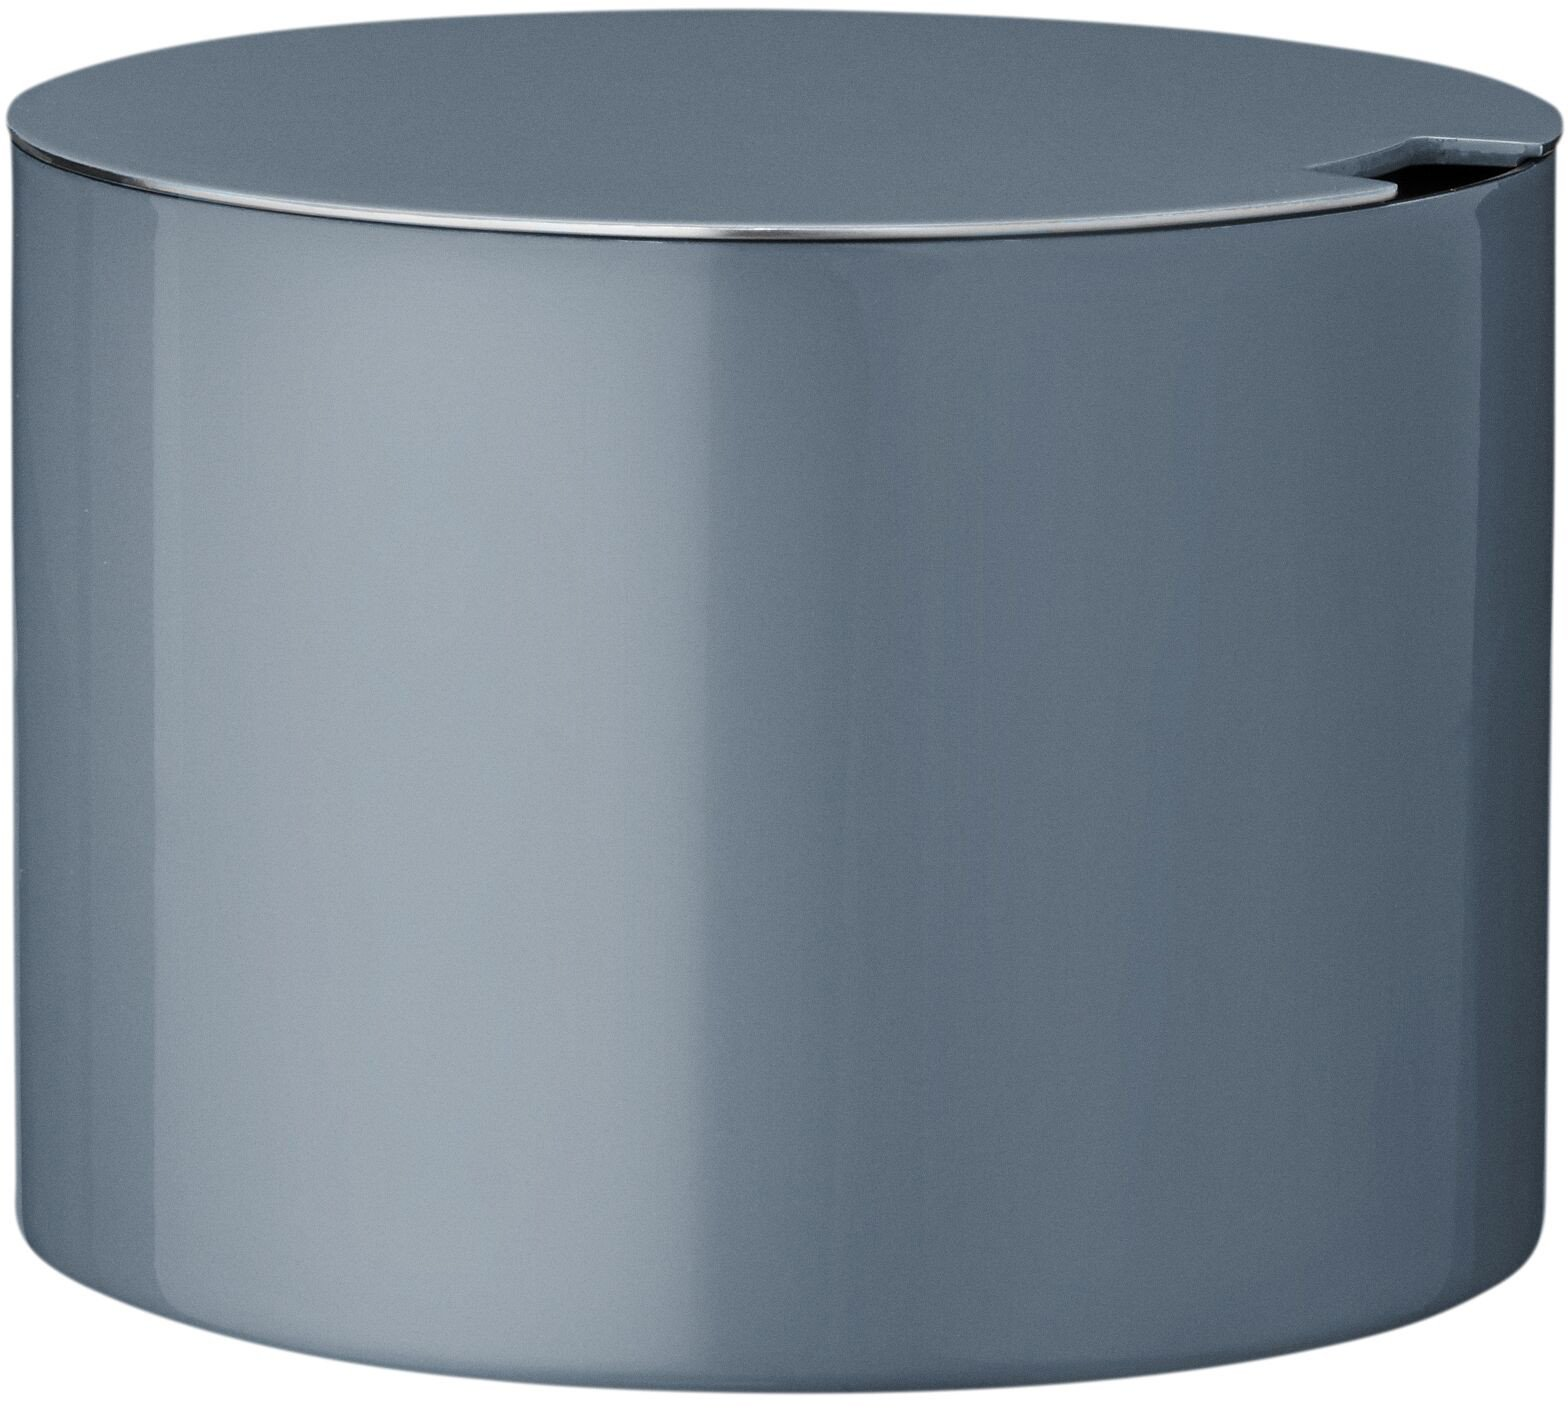 Cylinda-line 50th anniversary Sugar Bowl Ocean Blue by A. Jacobsen for Stelton